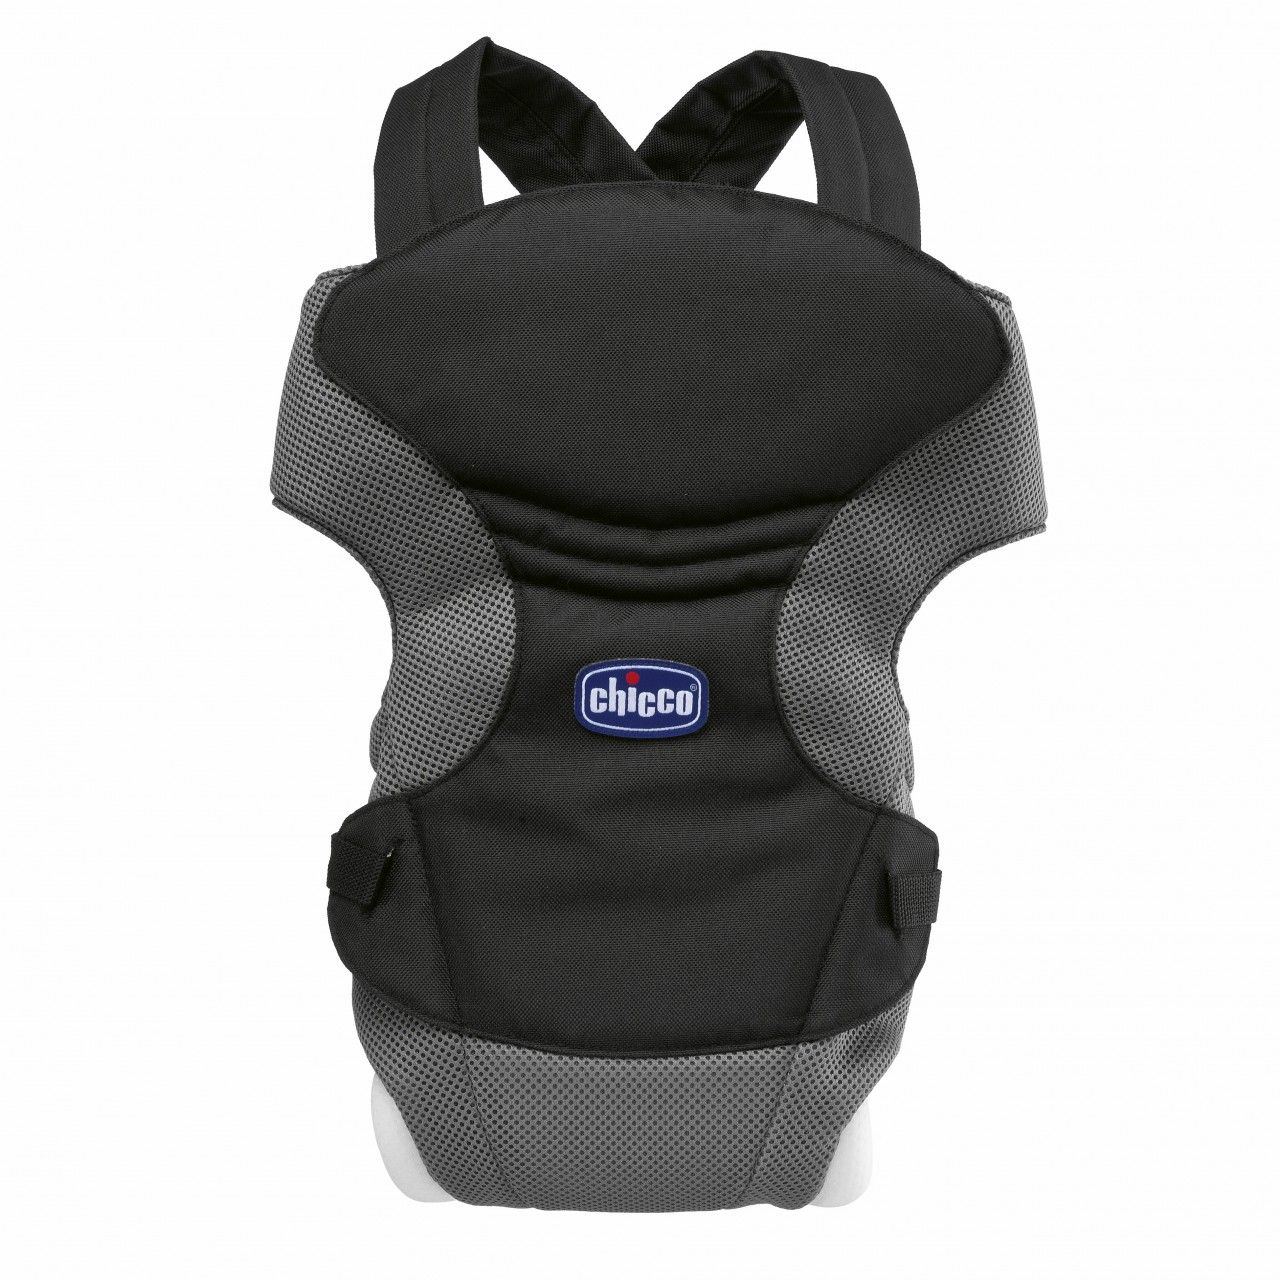 Black Chicco GO Baby Carrier is the perfect carrier for